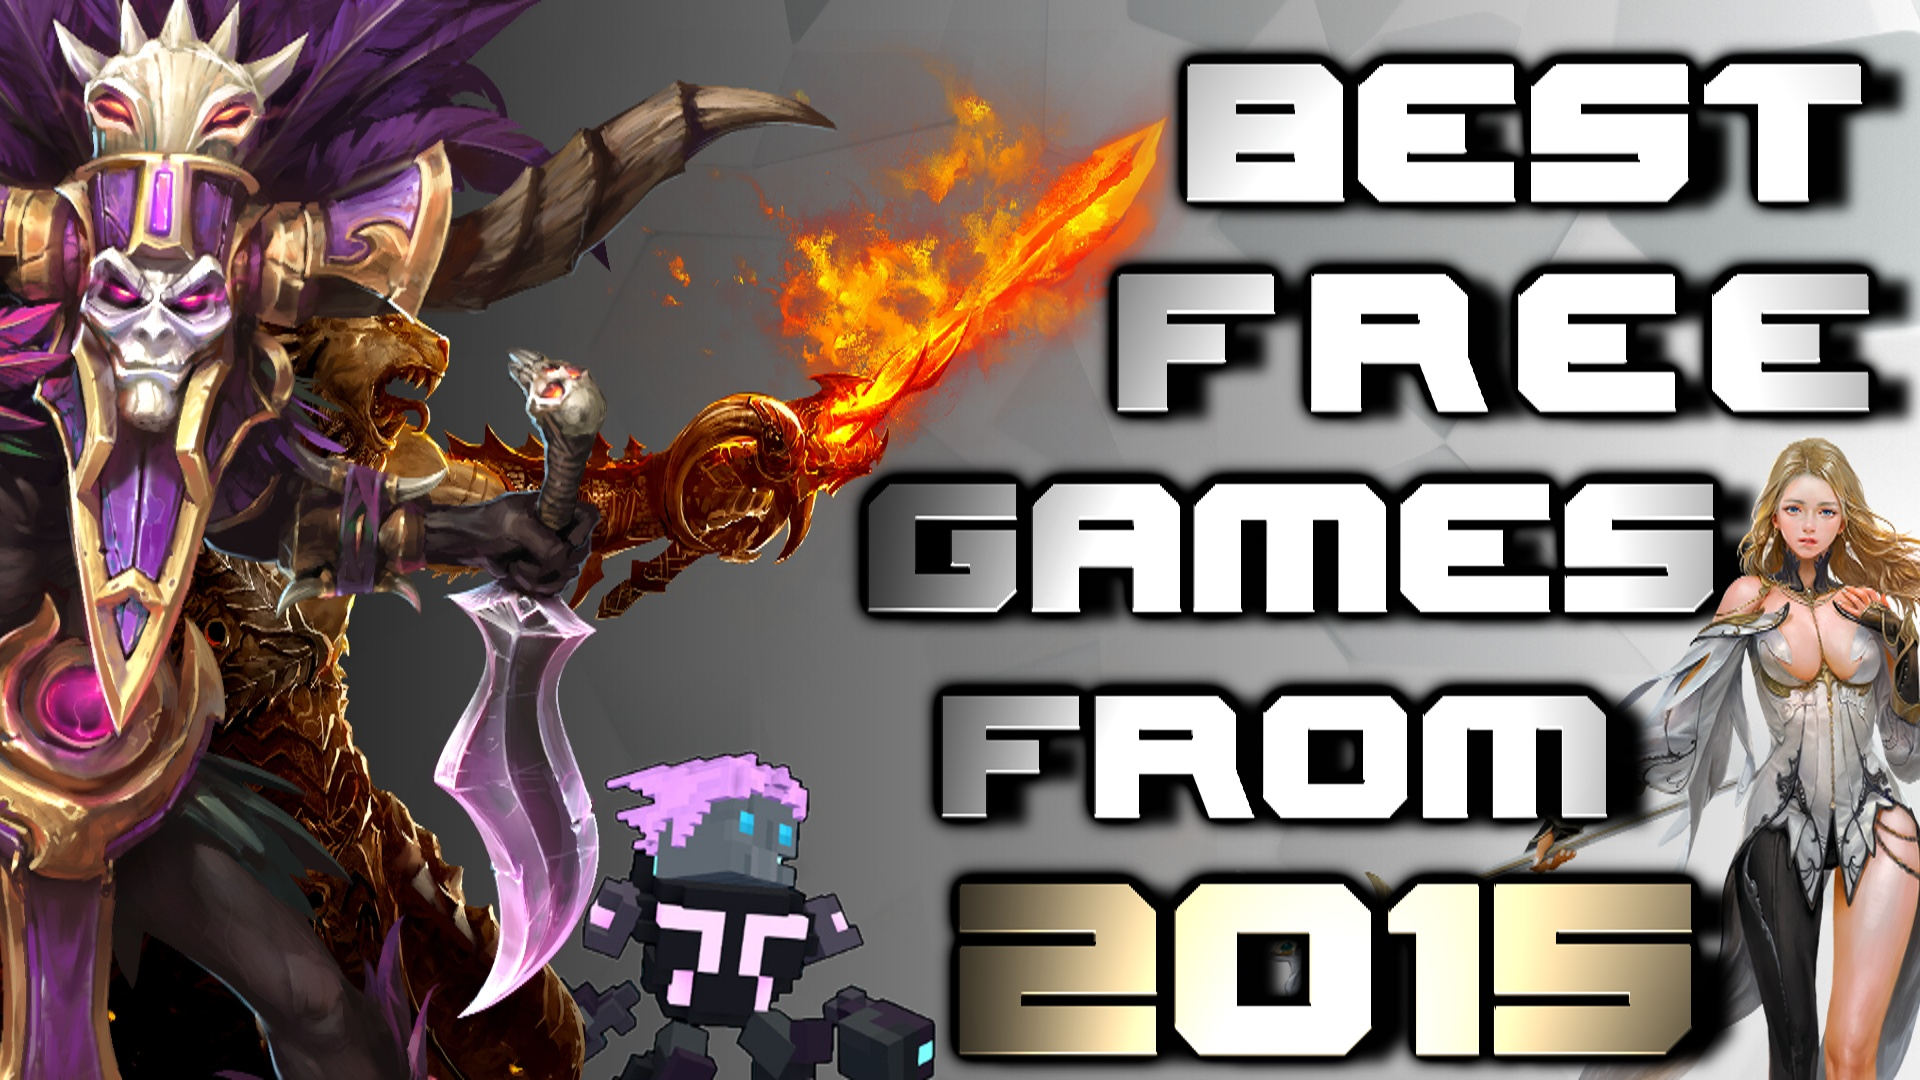 MMOHuts Best Free to Play Games of 2015